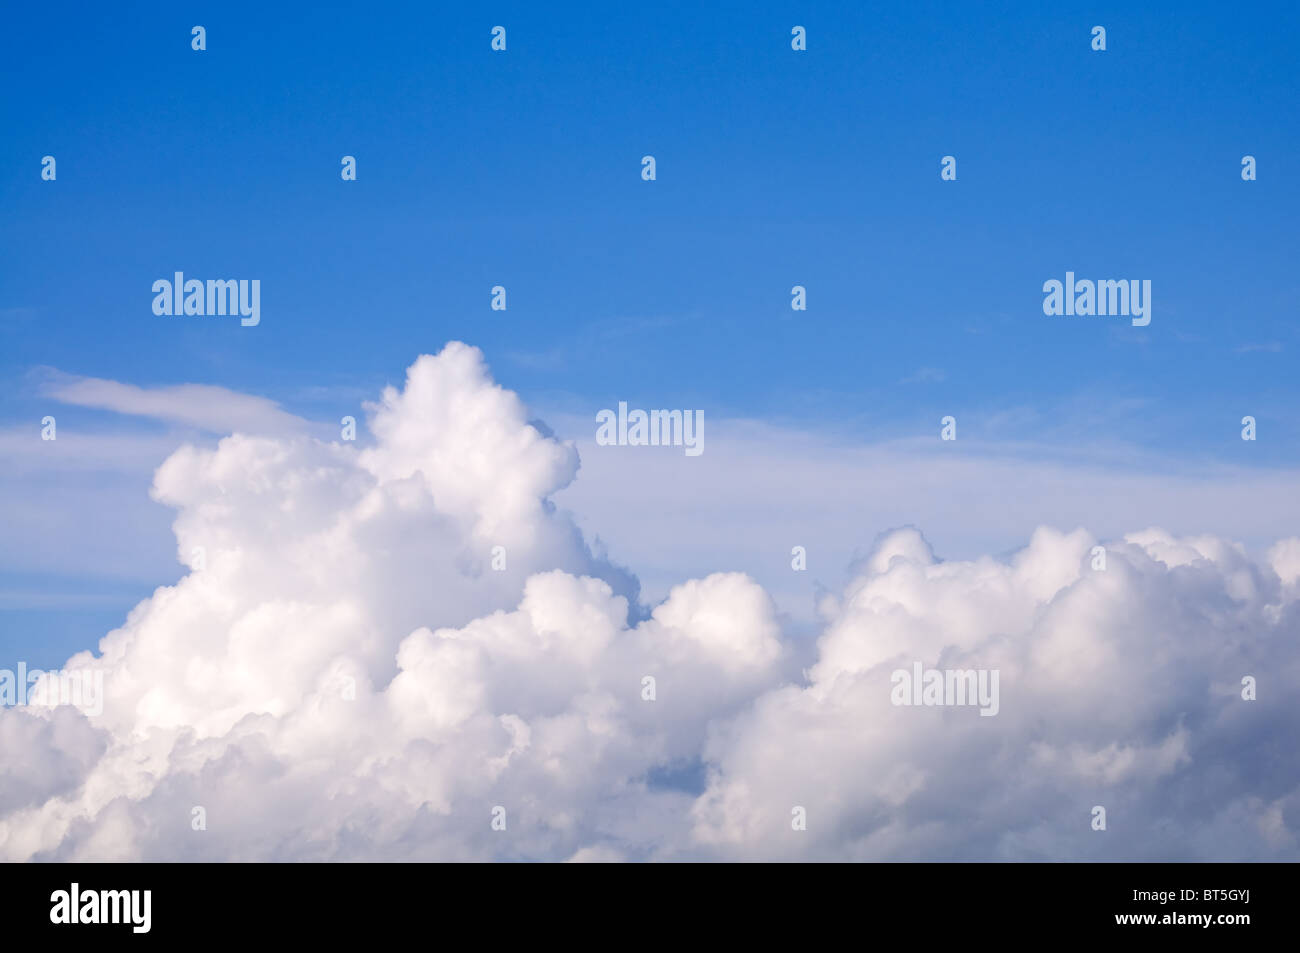 Nice clouds against the blue sky - Stock Image